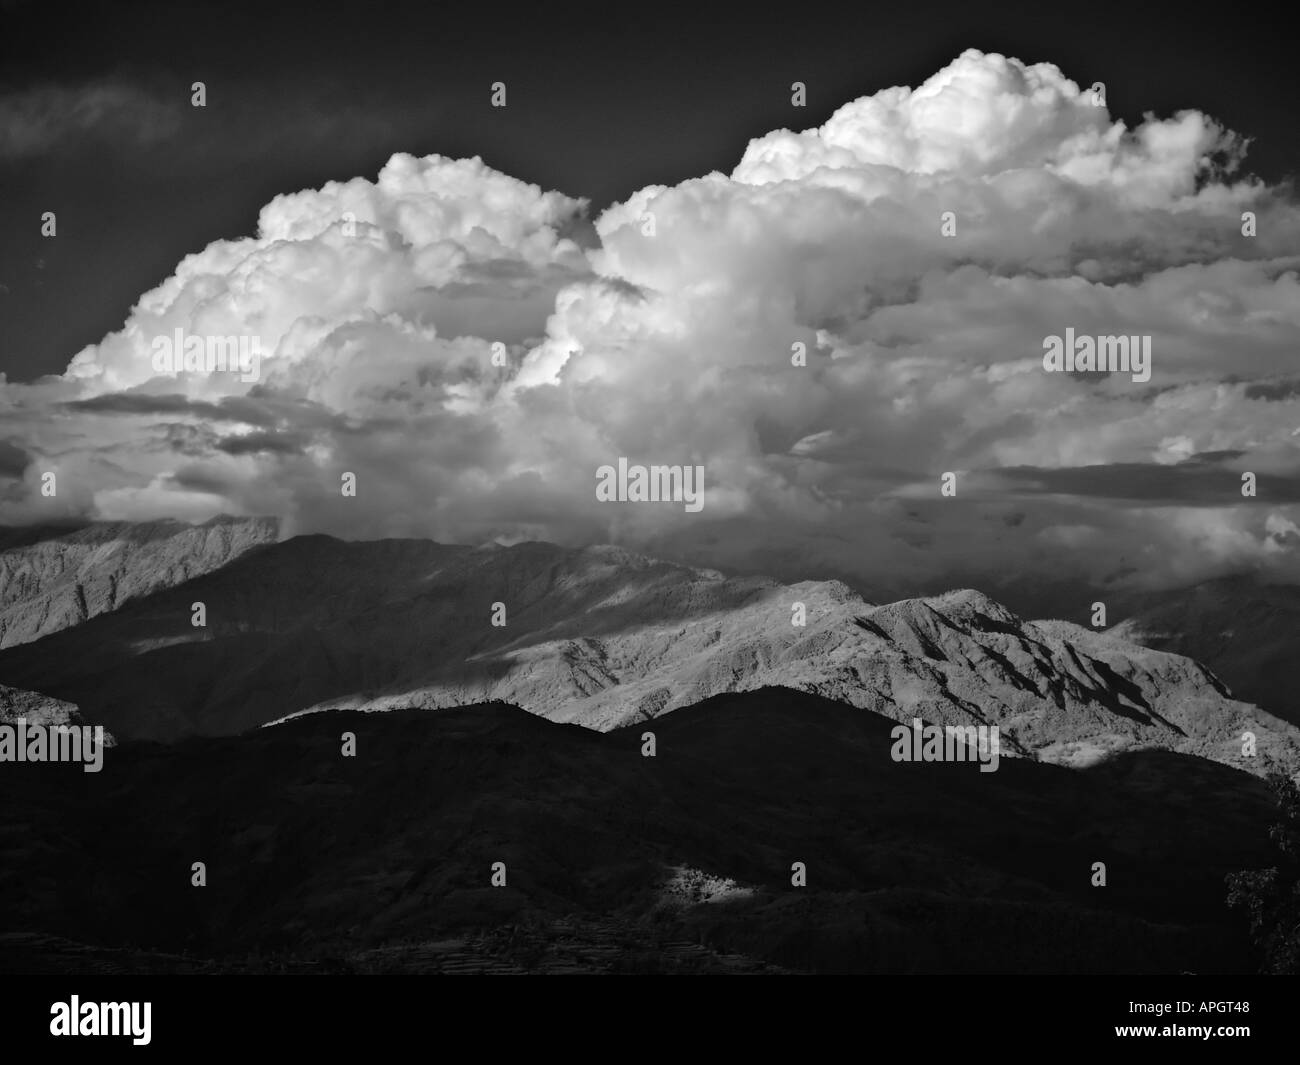 View over the Himalayan foothills and mountains from Nagarkot Kathmandu valley Nepal Stock Photo